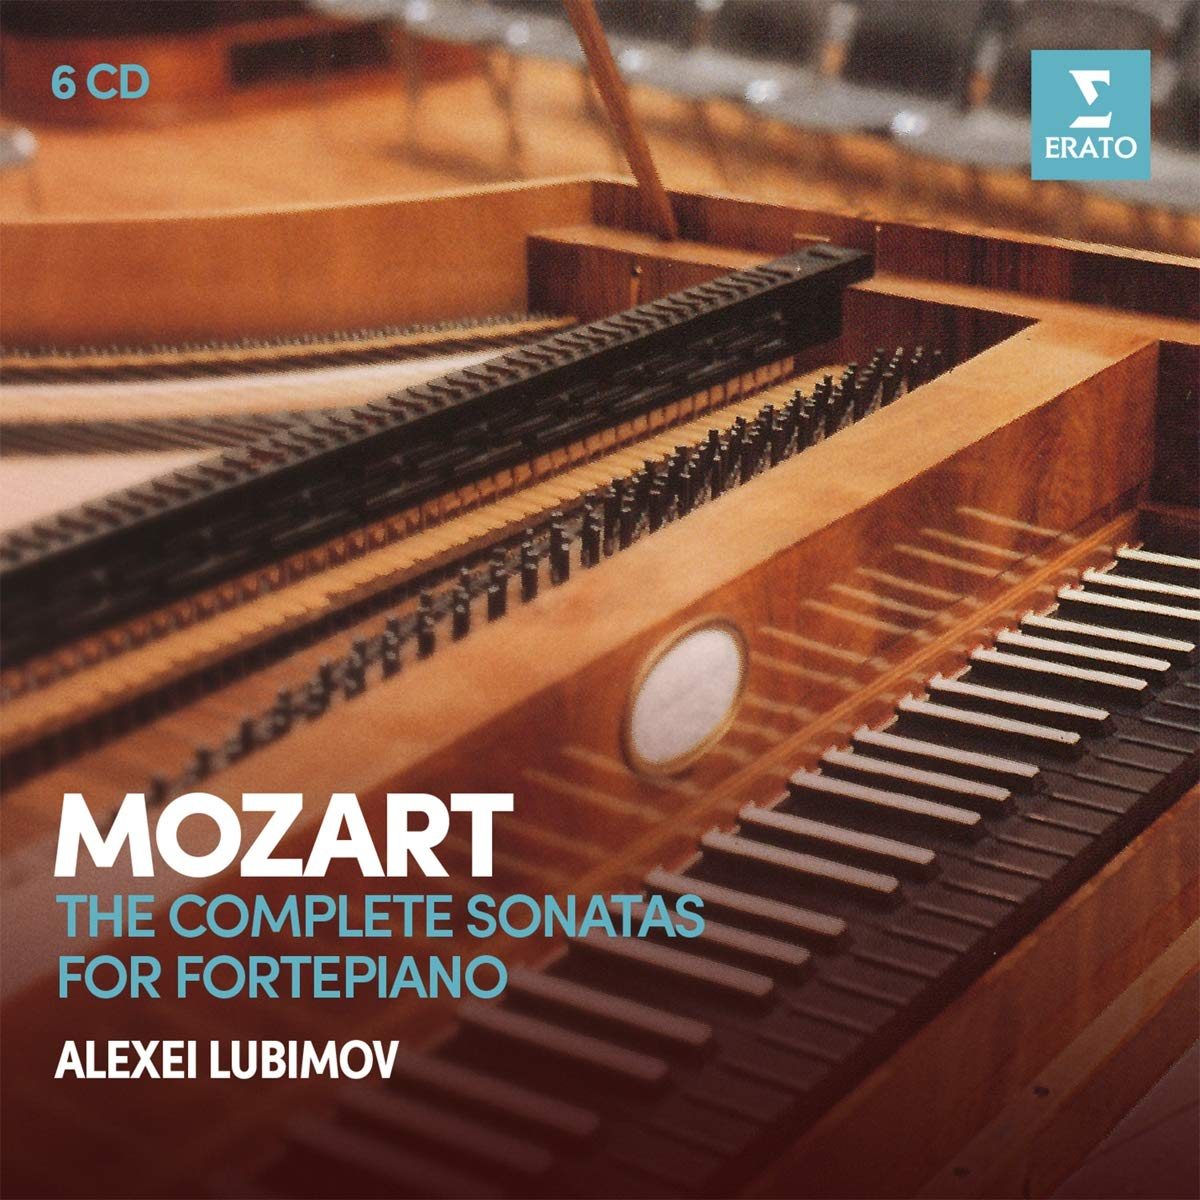 CD : Alexei Lubimov - Mozart: Complete Sonatas For Pianoforte (6PC)